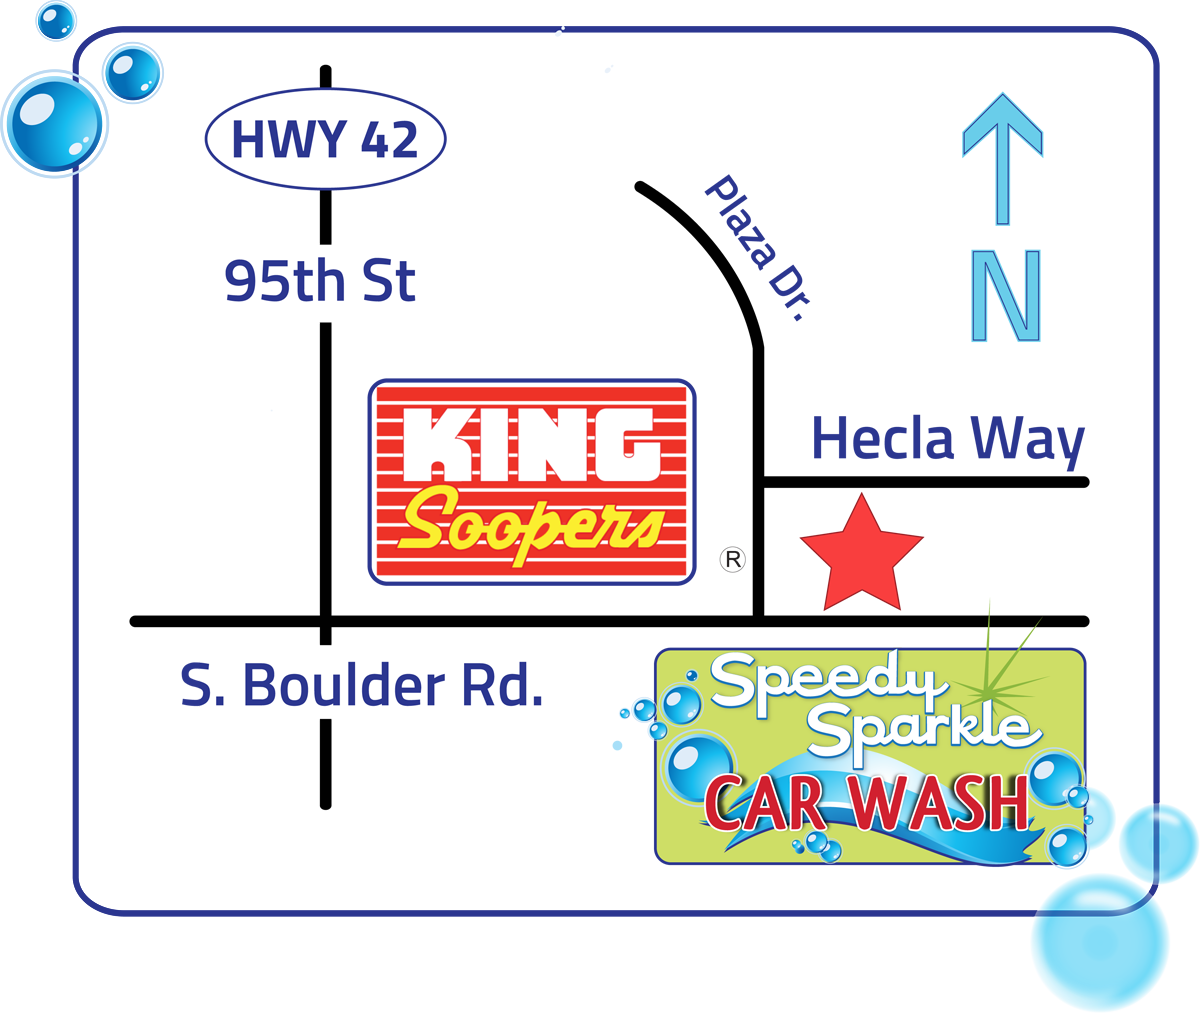 speedy sparkle car wash louisville colorado map and location and directions